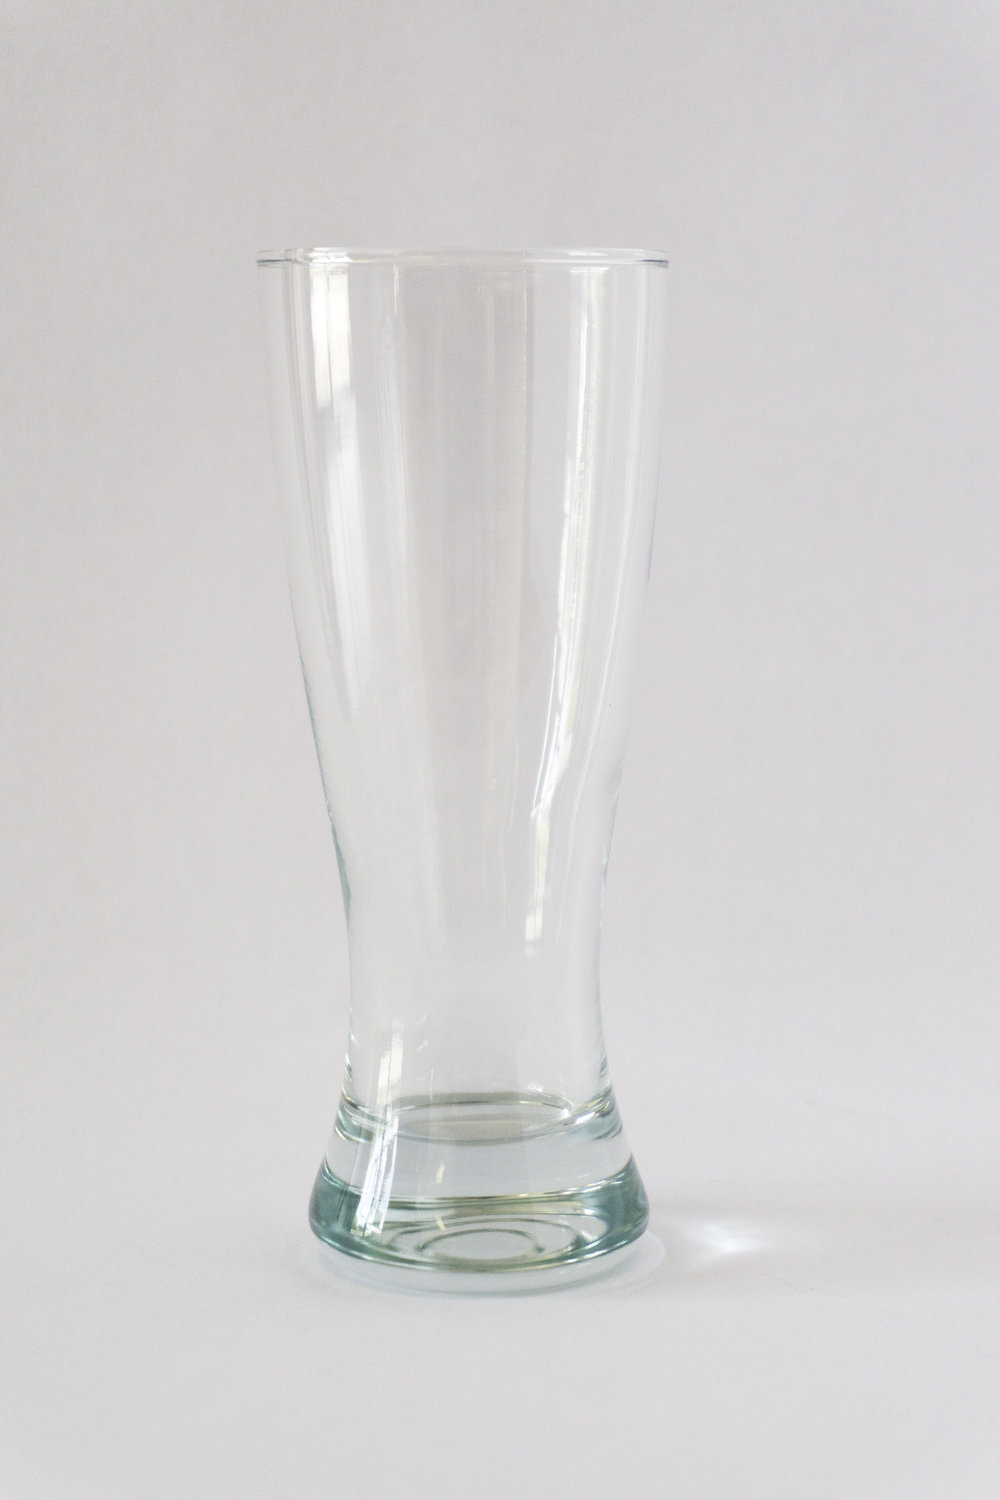 12 oz. Pilsner Glass  $0.60 each